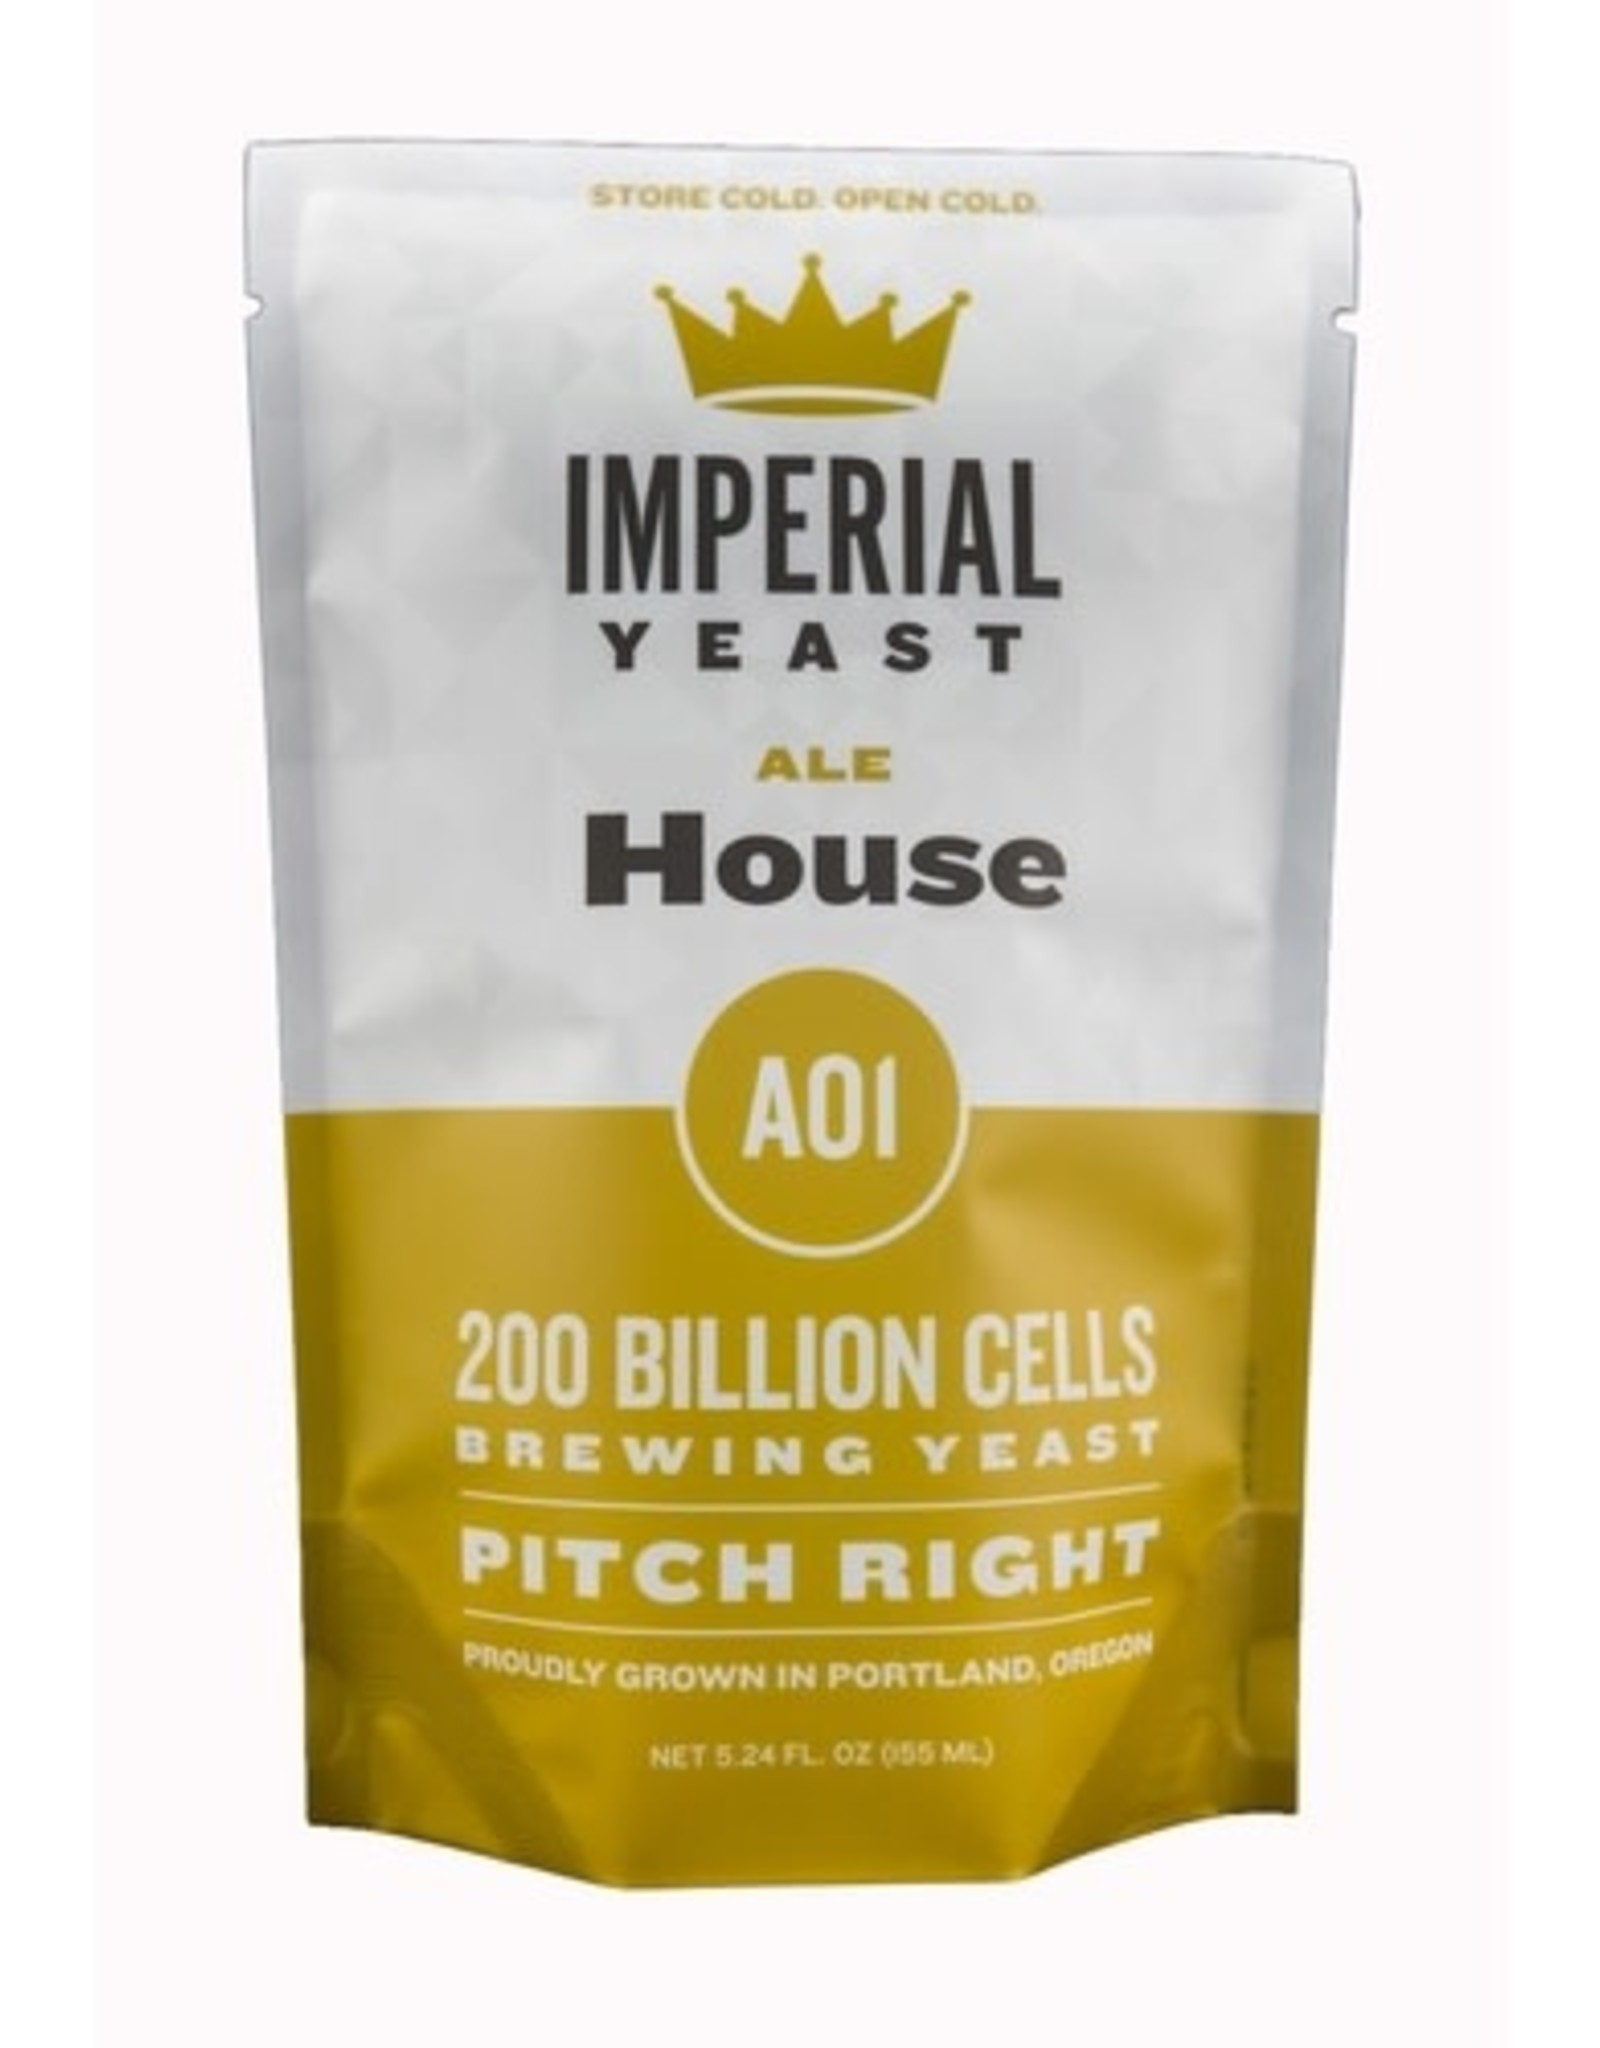 Imperial Yeast A01 House- Imperial Yeast